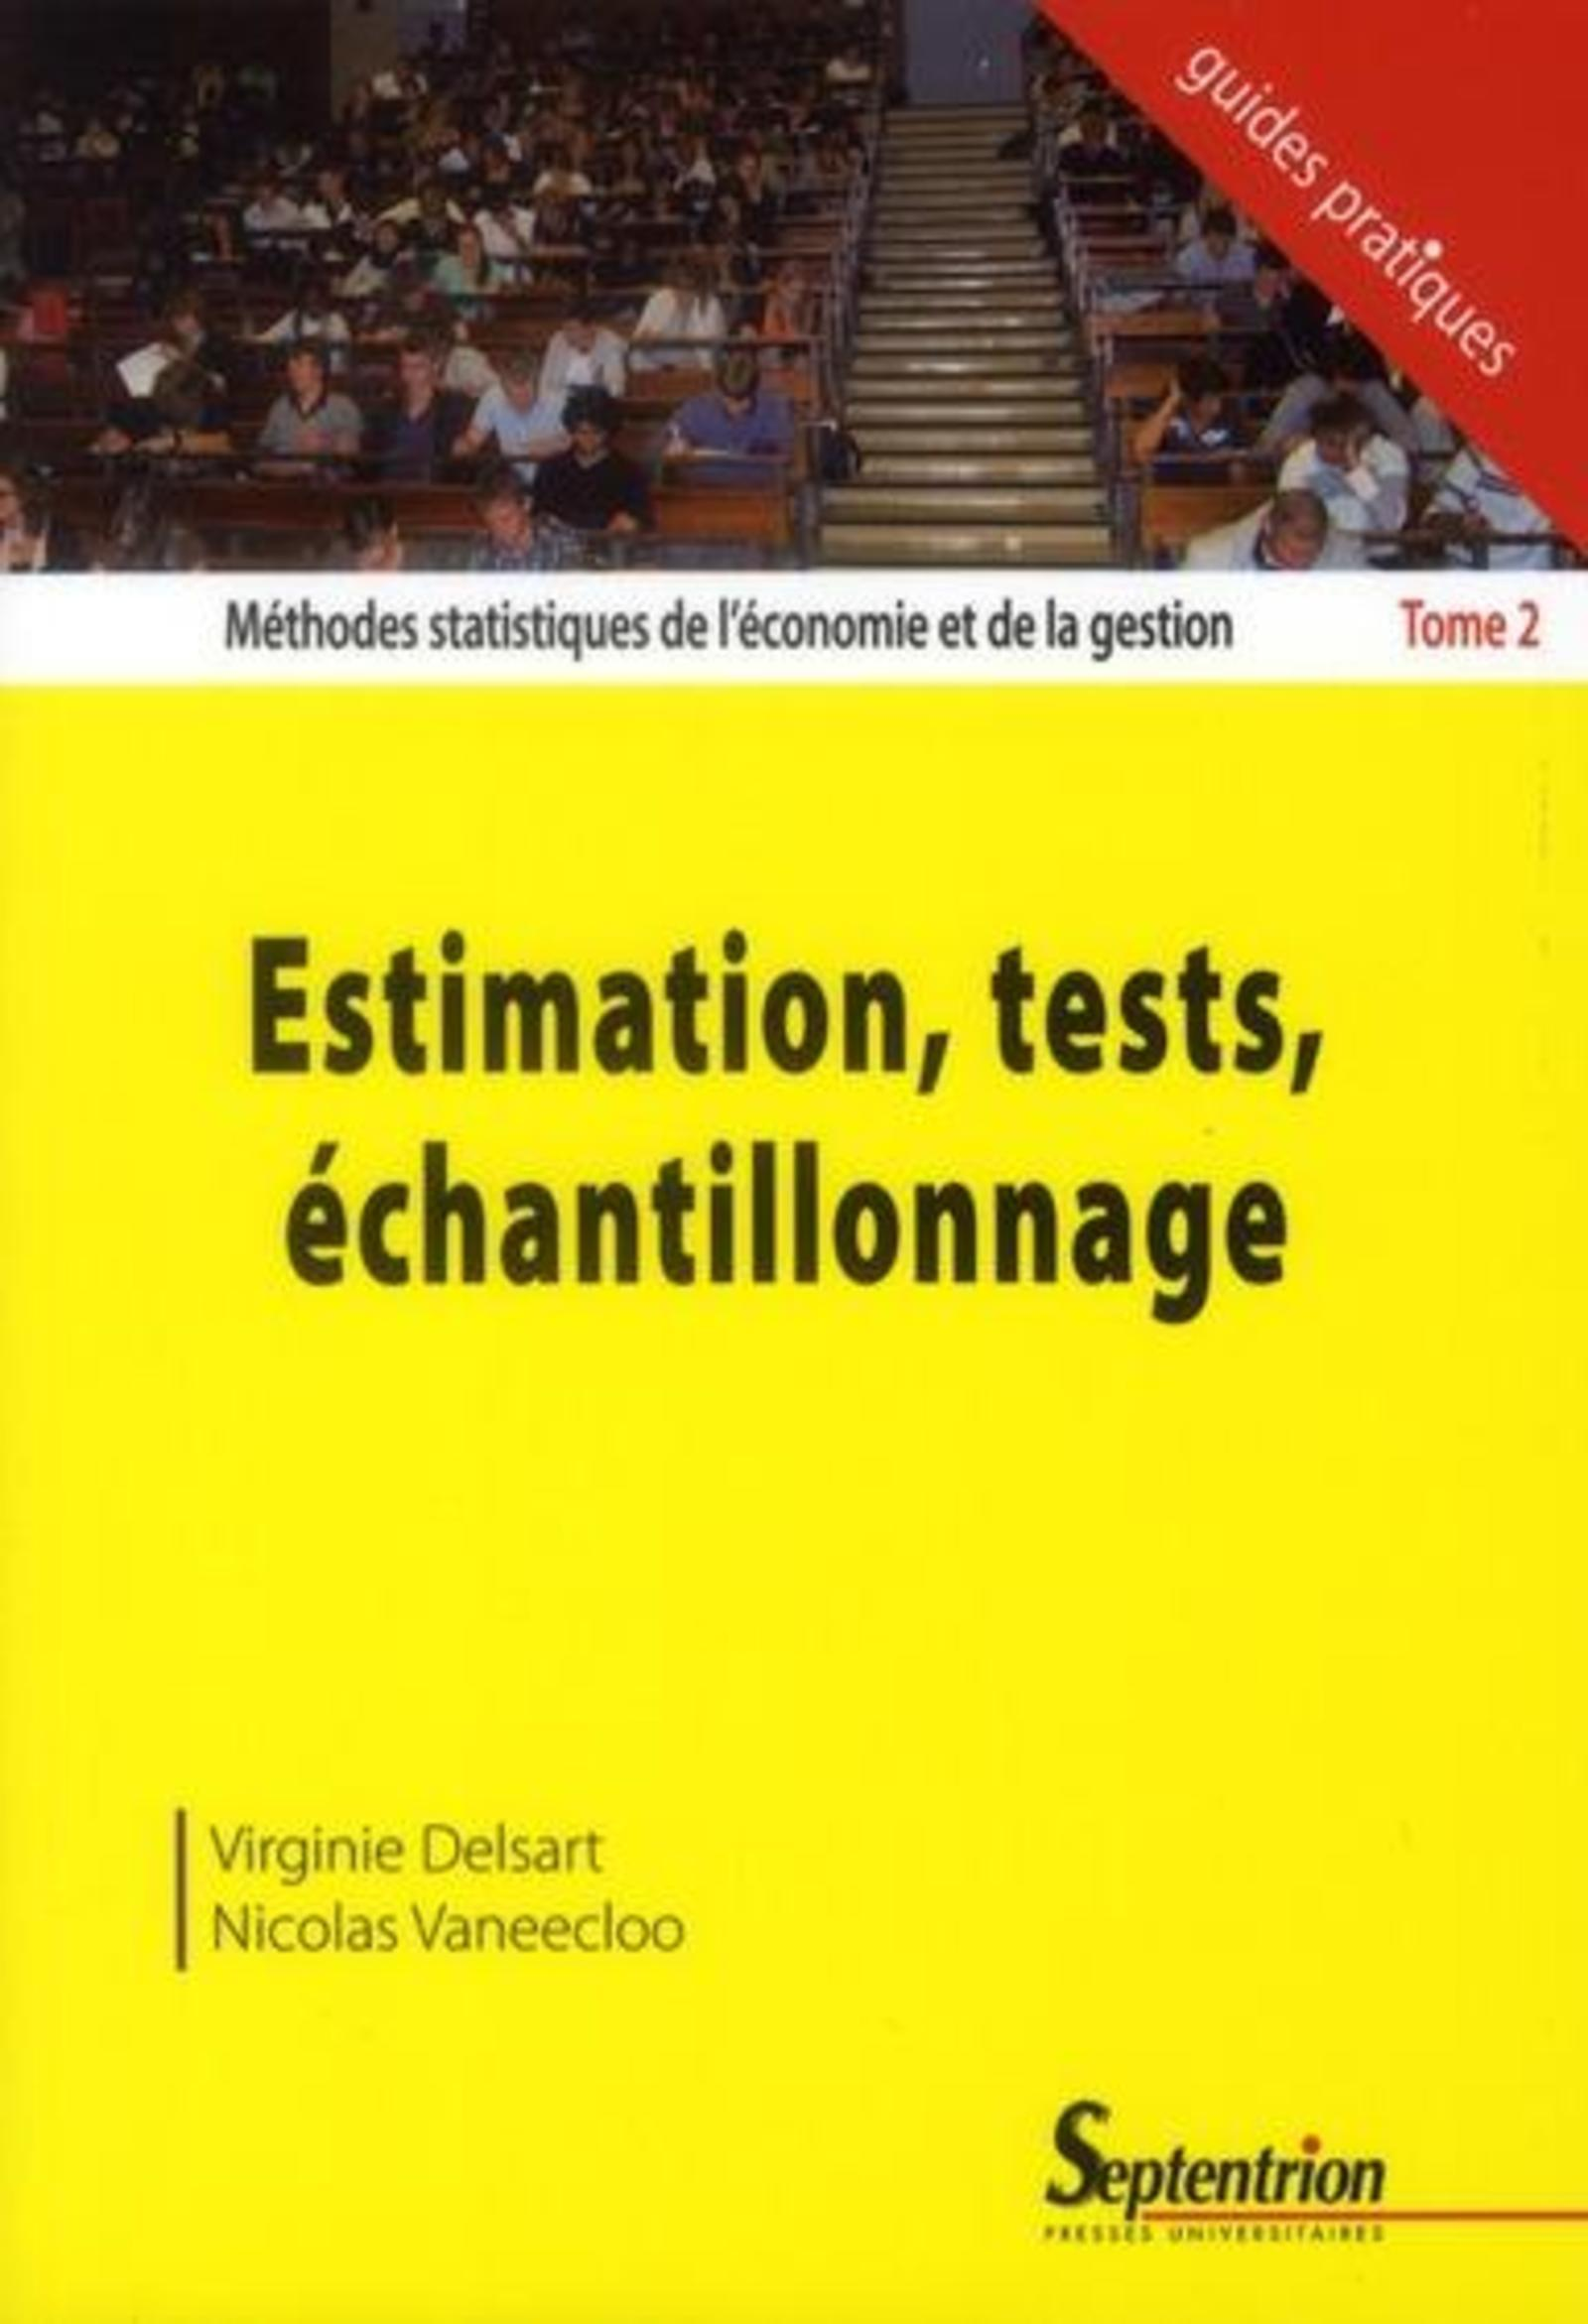 ESTIMATION, TESTS, ECHANTILLONNAGE